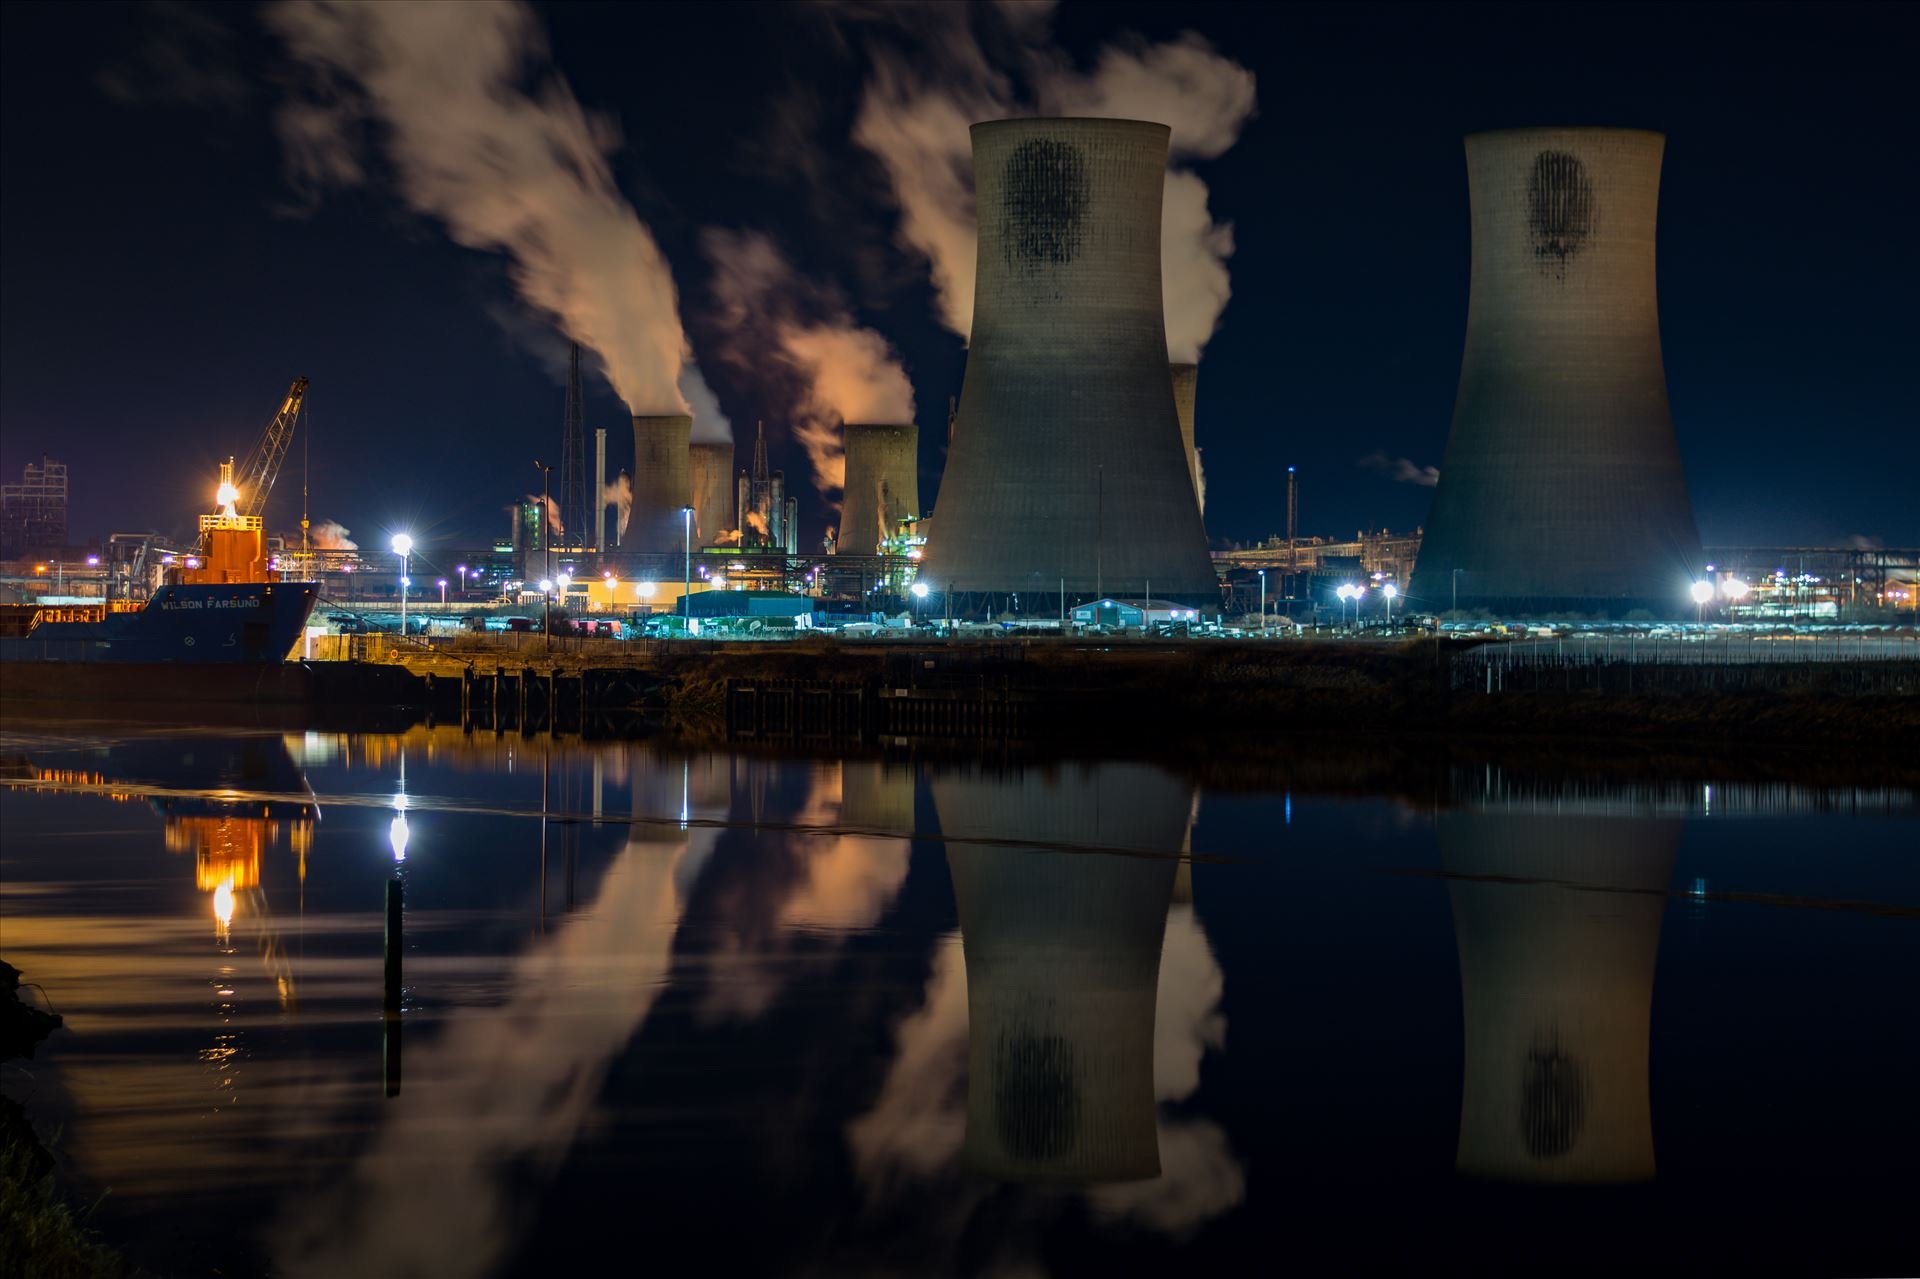 Industrial Reflections - Industrial Reflections on the River Tees by AJ Stoves Photography